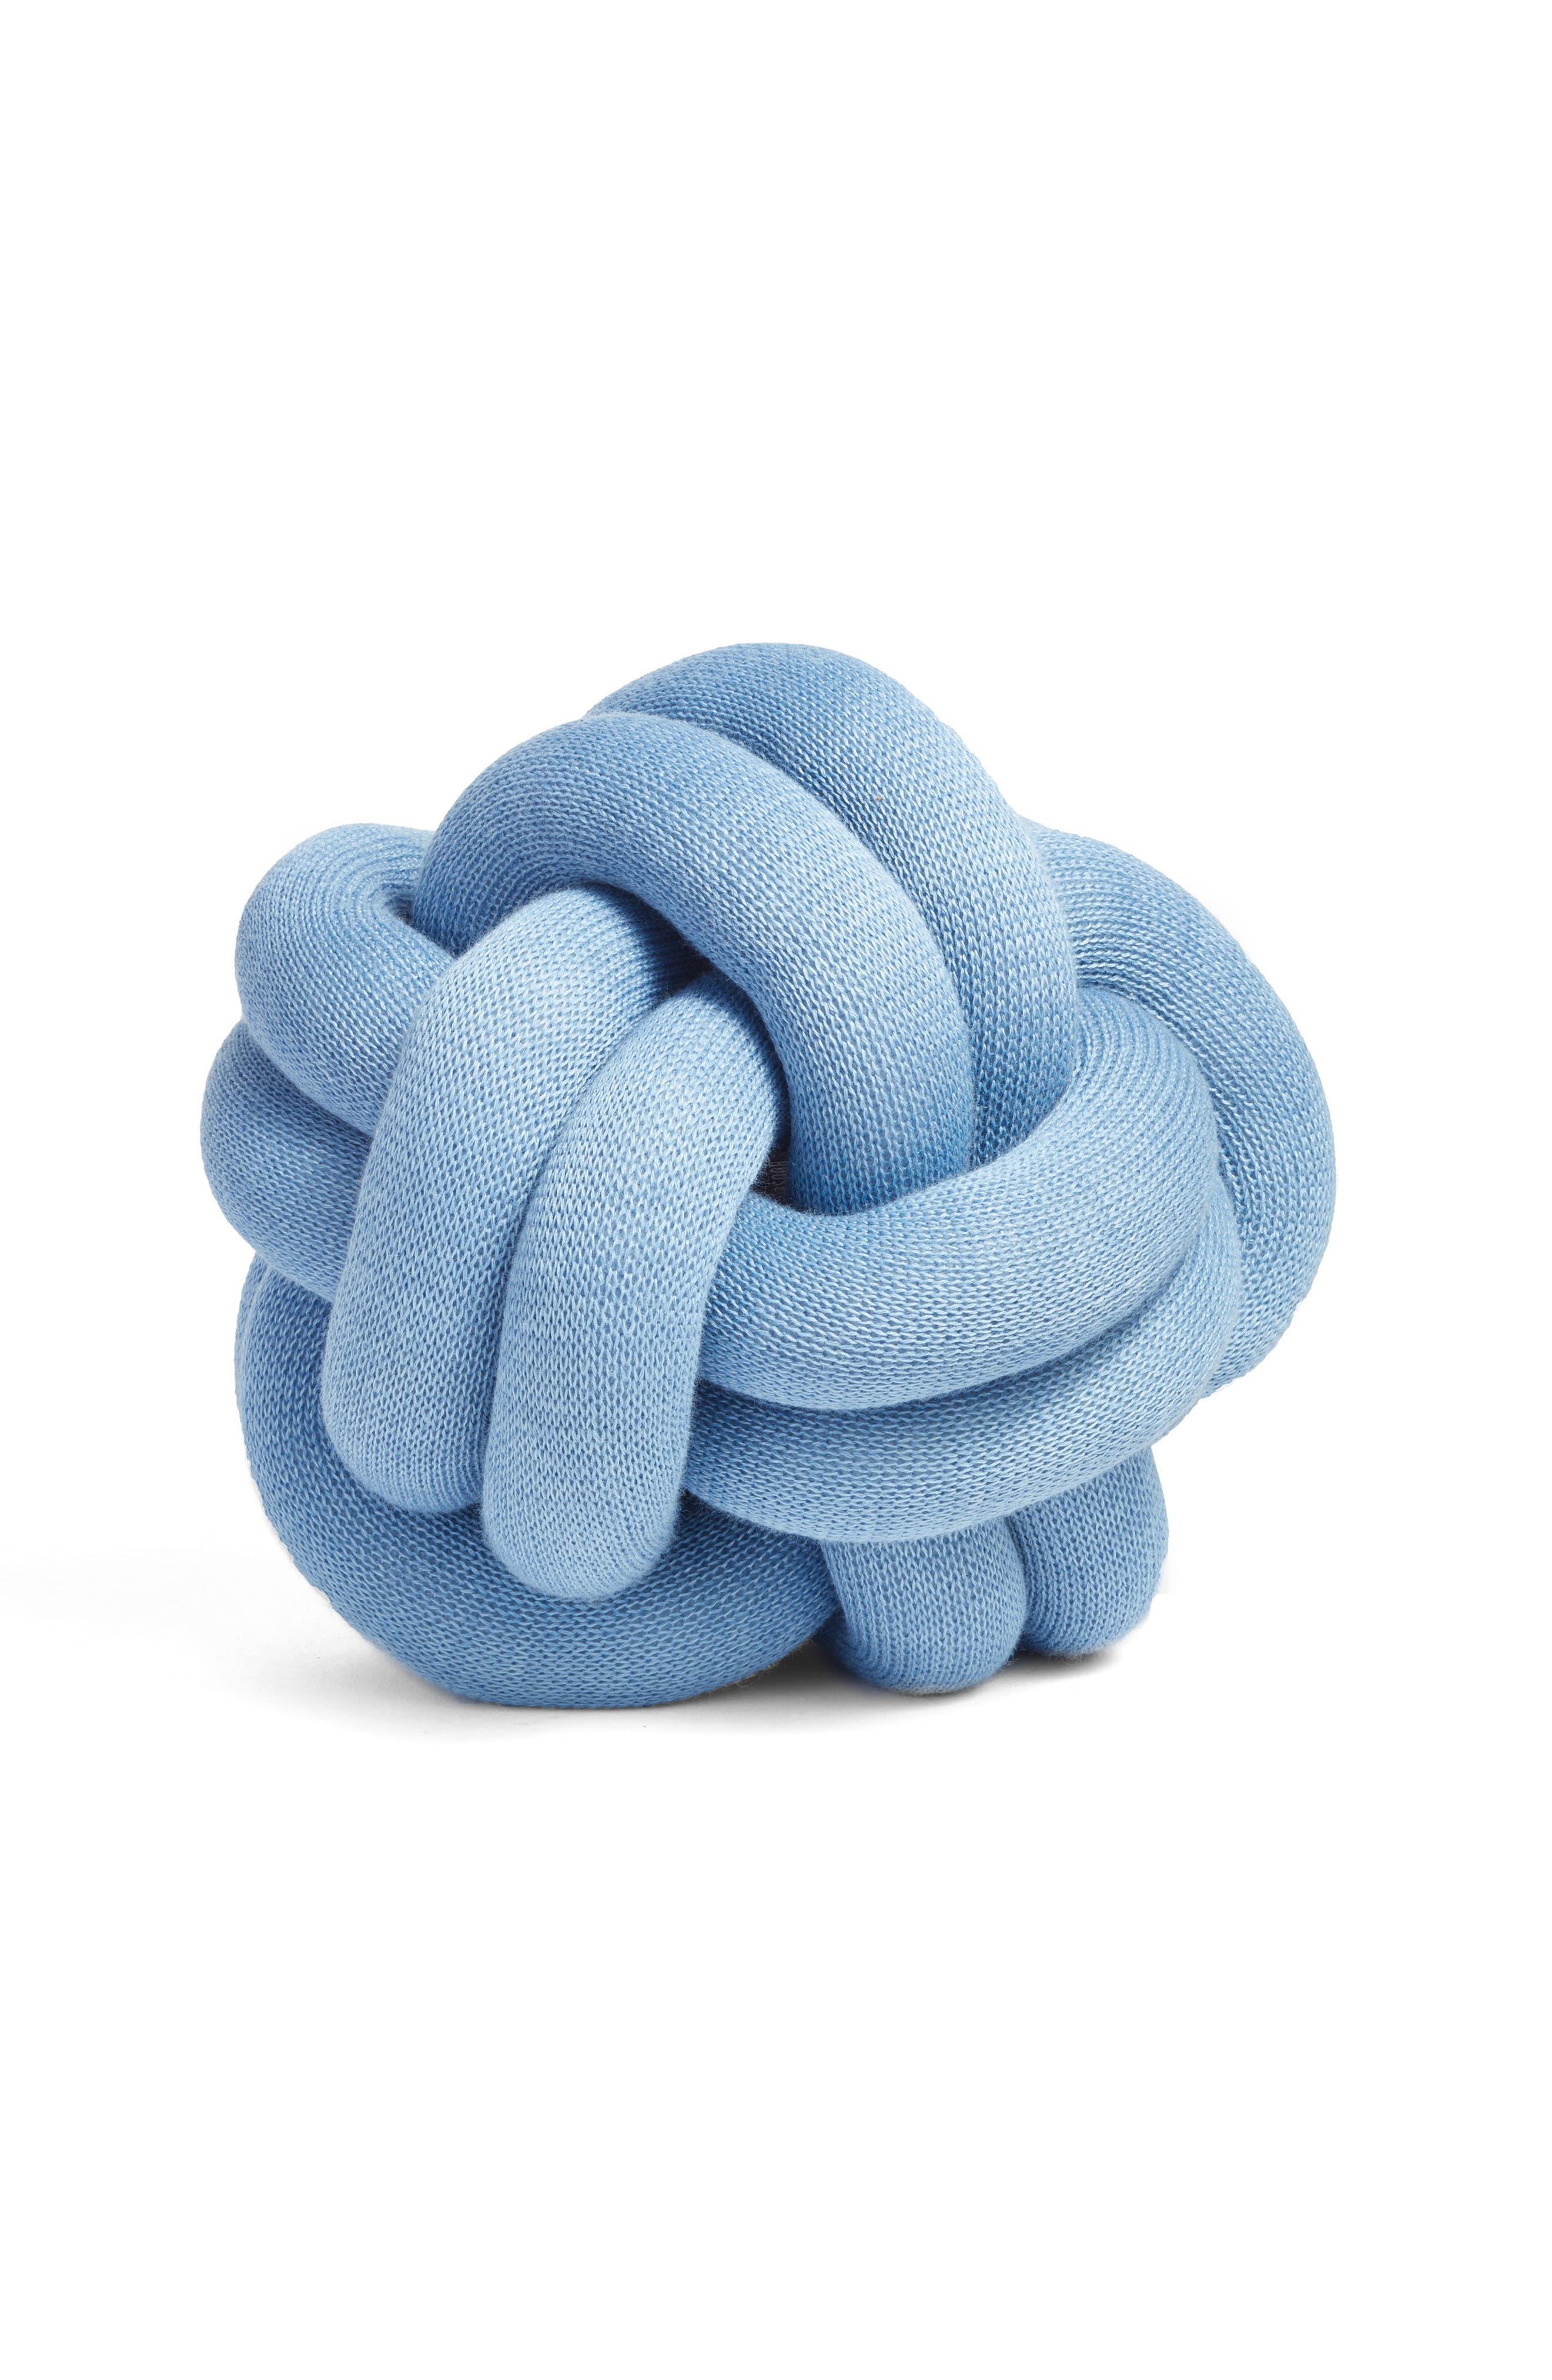 MoMA Design Store Knot Cushion